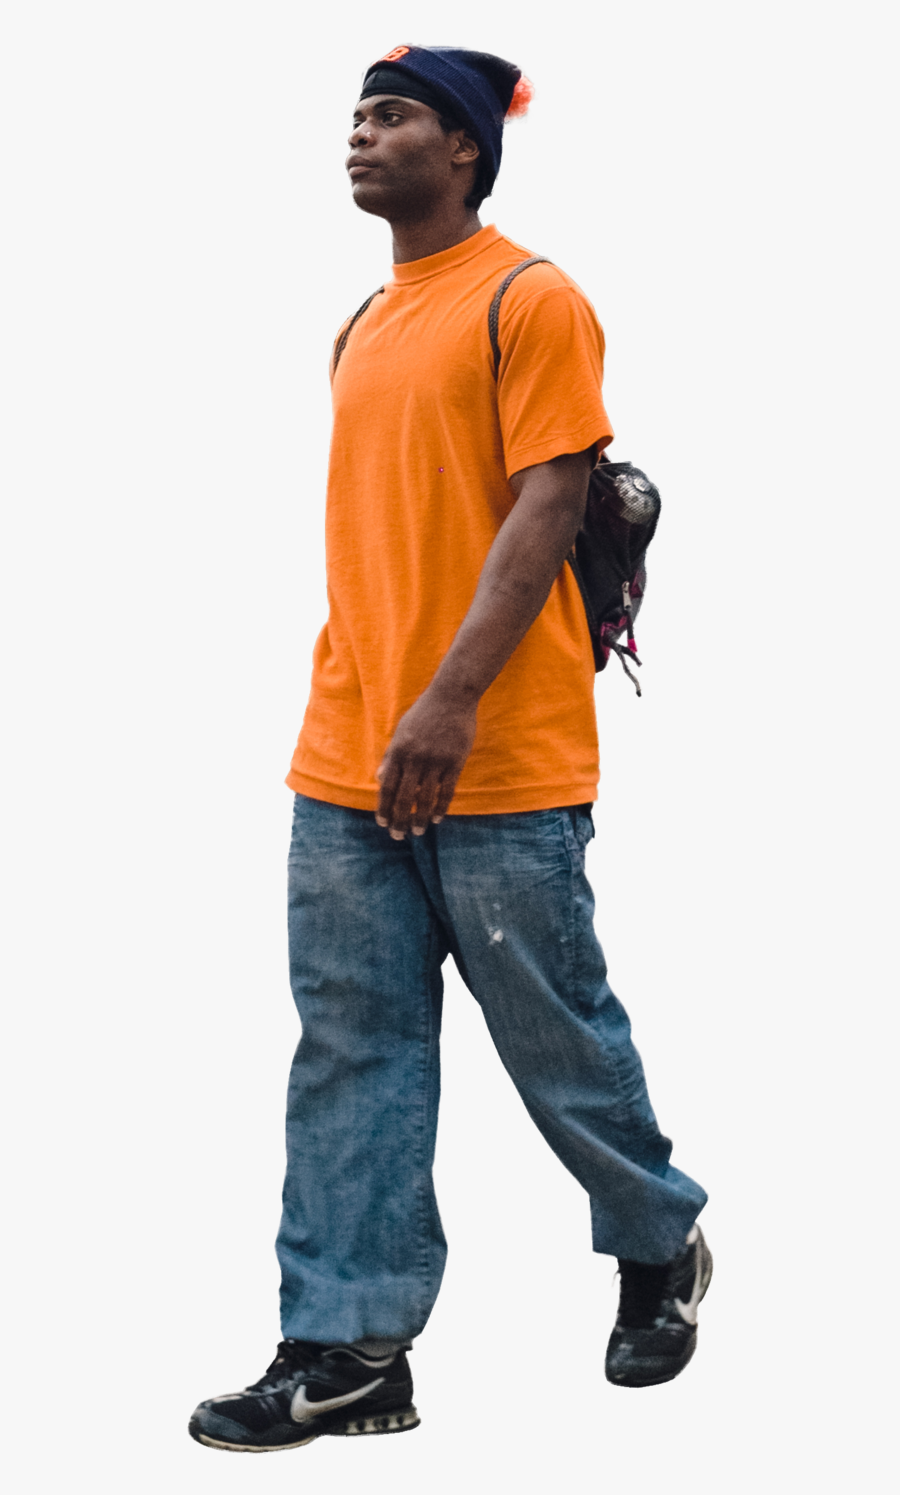 Transparent African People Png - African American People Png, Transparent Clipart